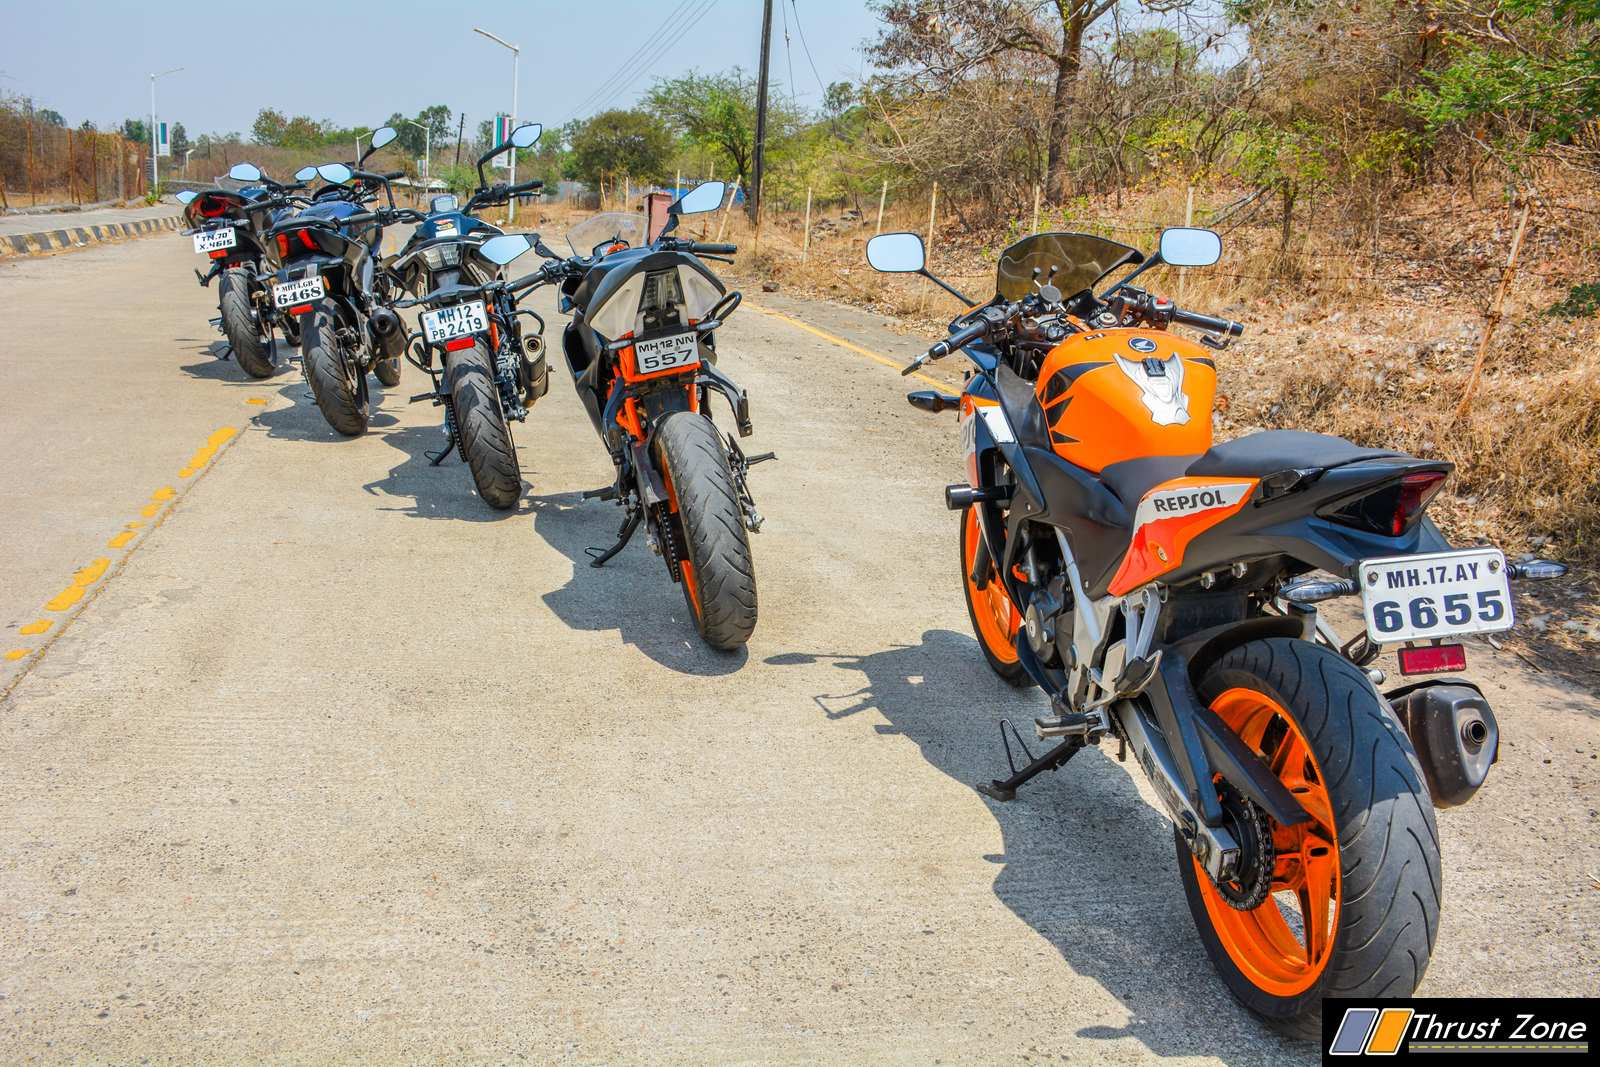 ApacheRR310-vs-Dominar-400-vs-CBR250R-KTM-RC-200-Duke250-Comparison-Review-19